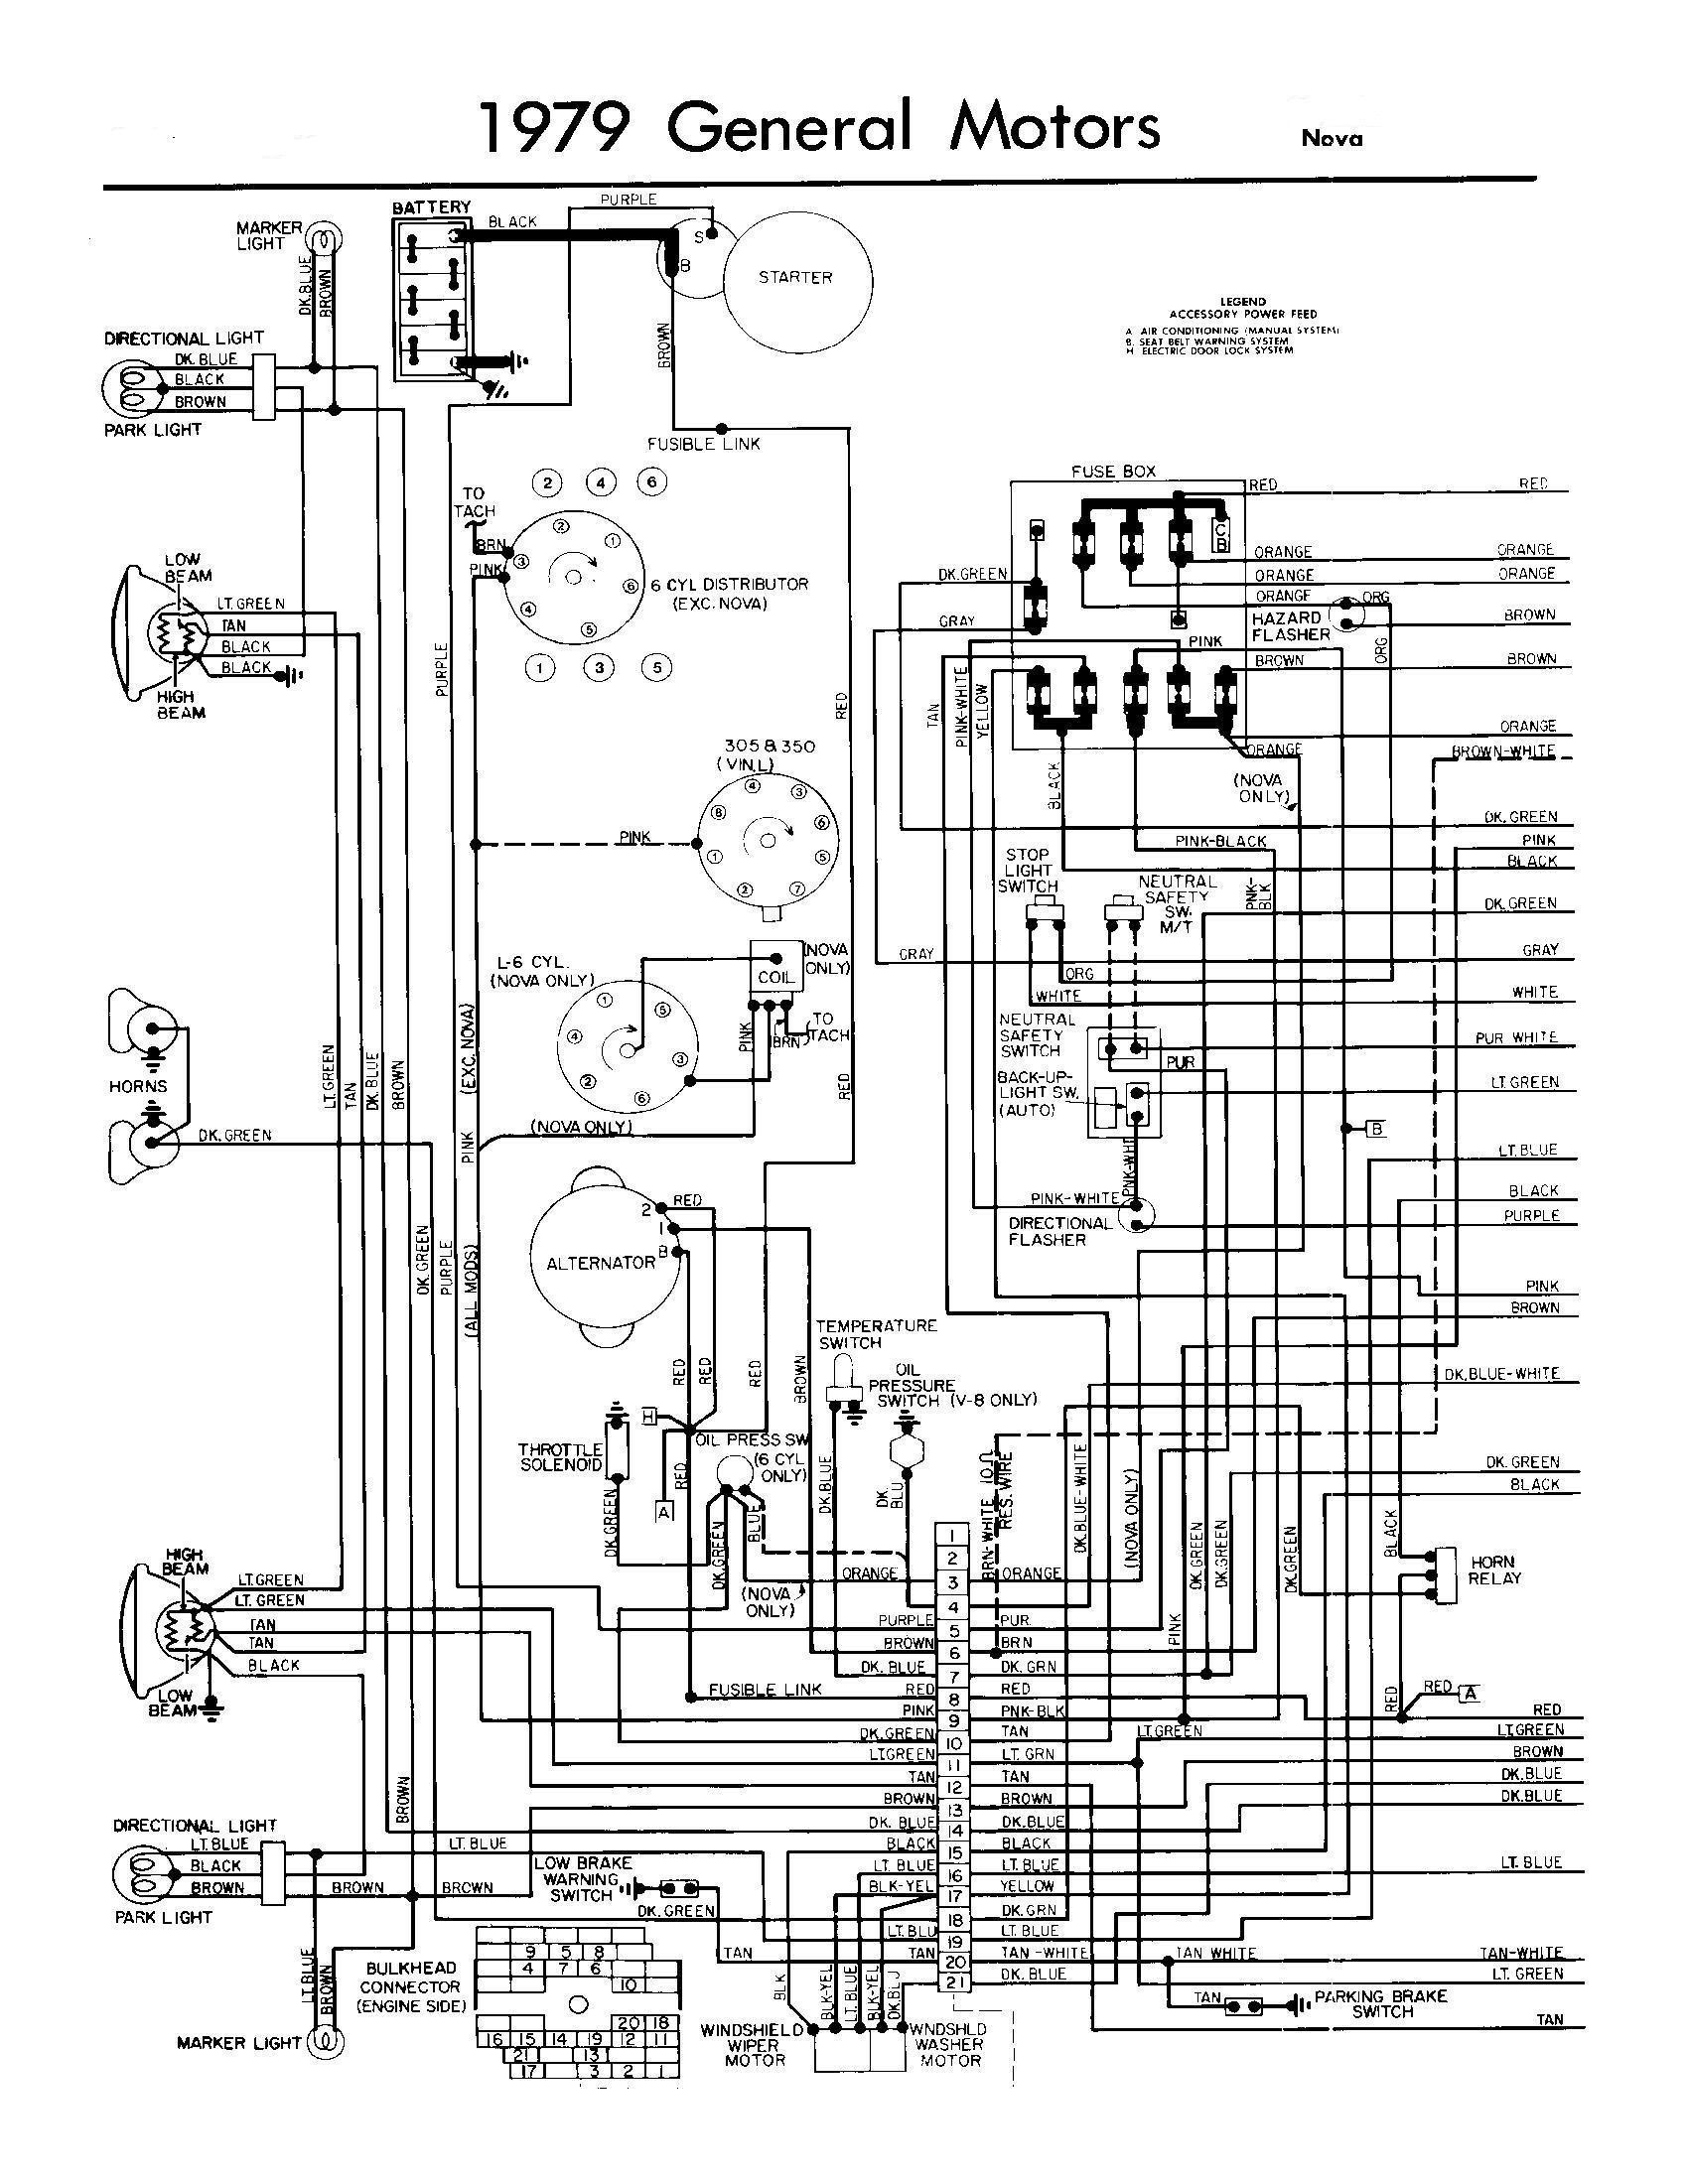 1970 Chevy Nova Heater Switch Wiring Diagram - Wiring Diagram •